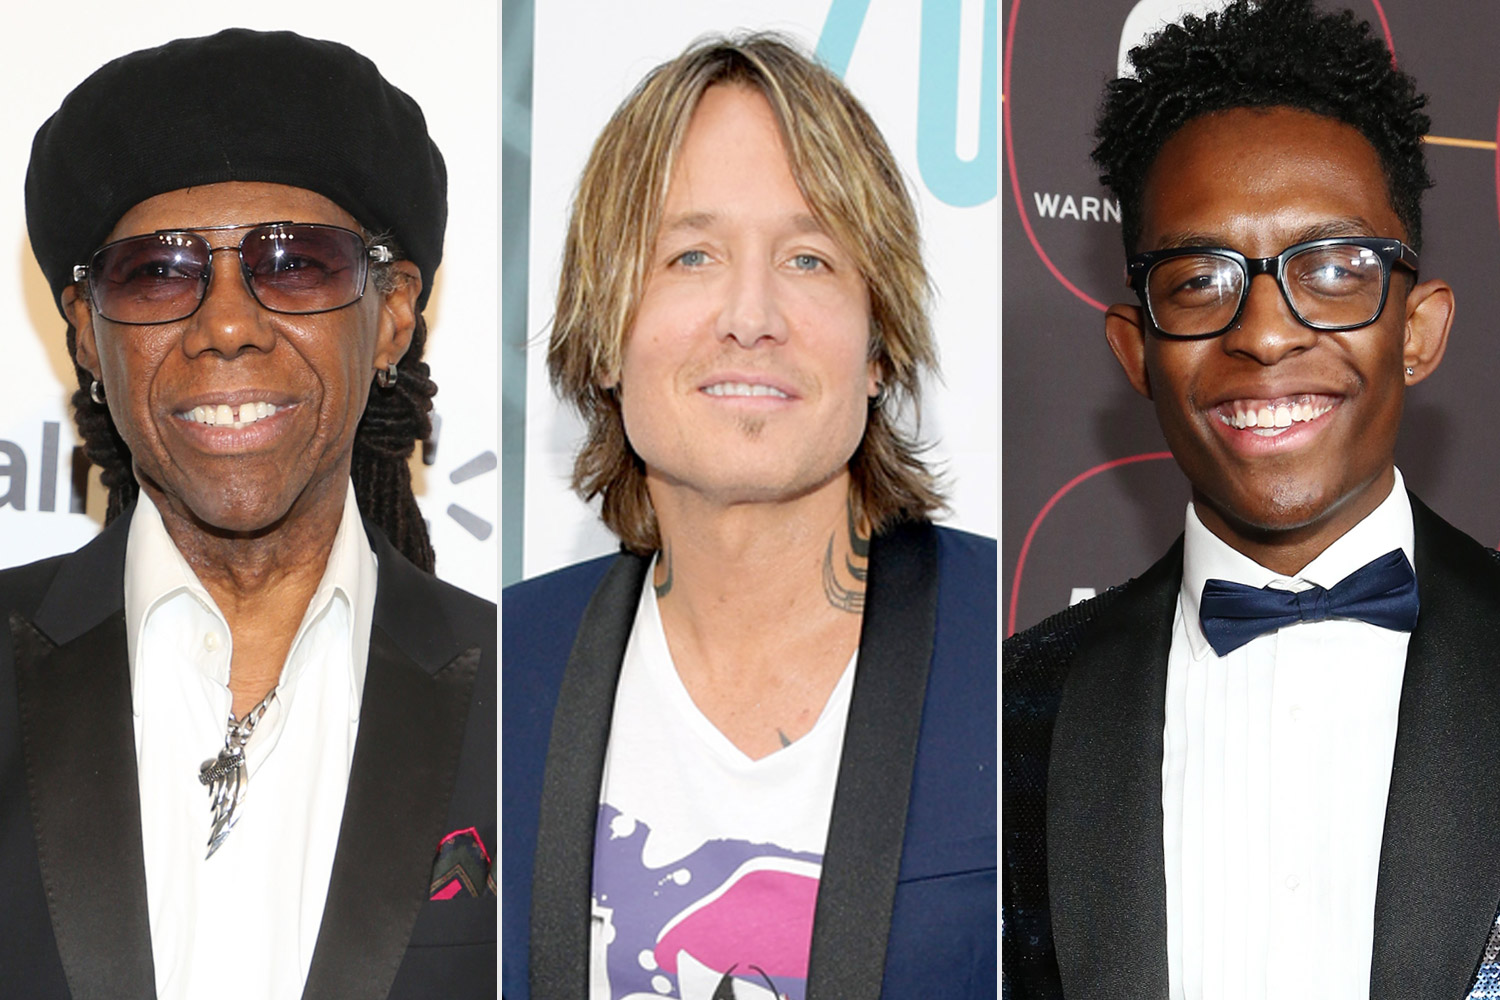 Keith Urban, Breland and Nile Rodgers